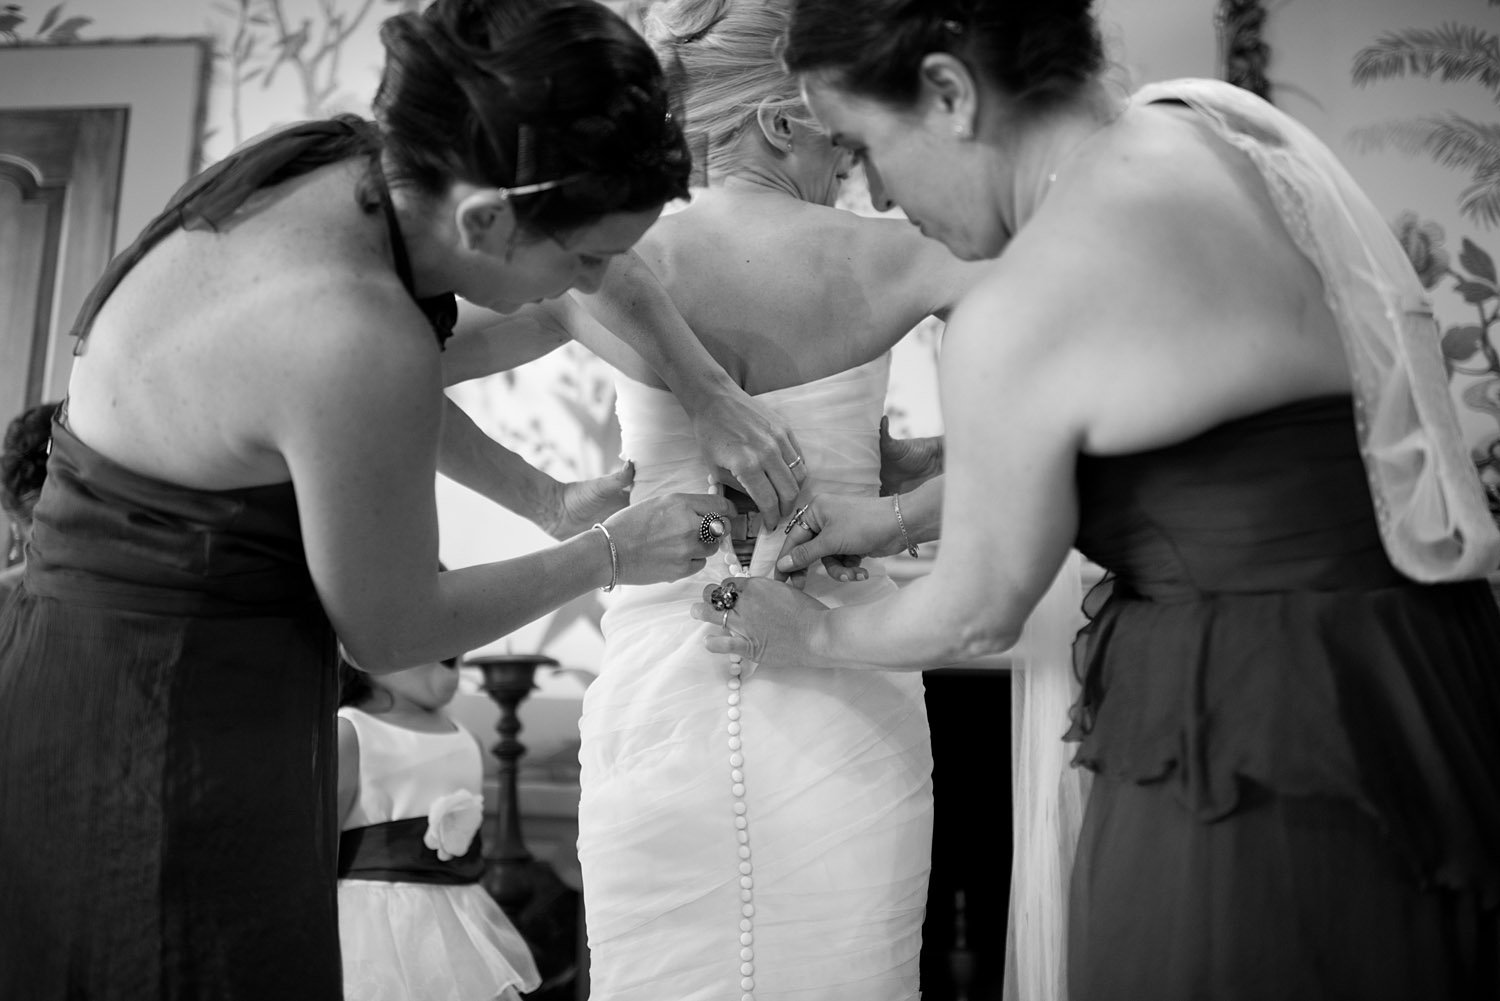 bridesmaids help the bride get dressed at this destination italian wedding at the Villa Terrace where destination wedidng photographer LExia Frank photographs this italian destination wedding entirely on film because she is a film photographer for weddings